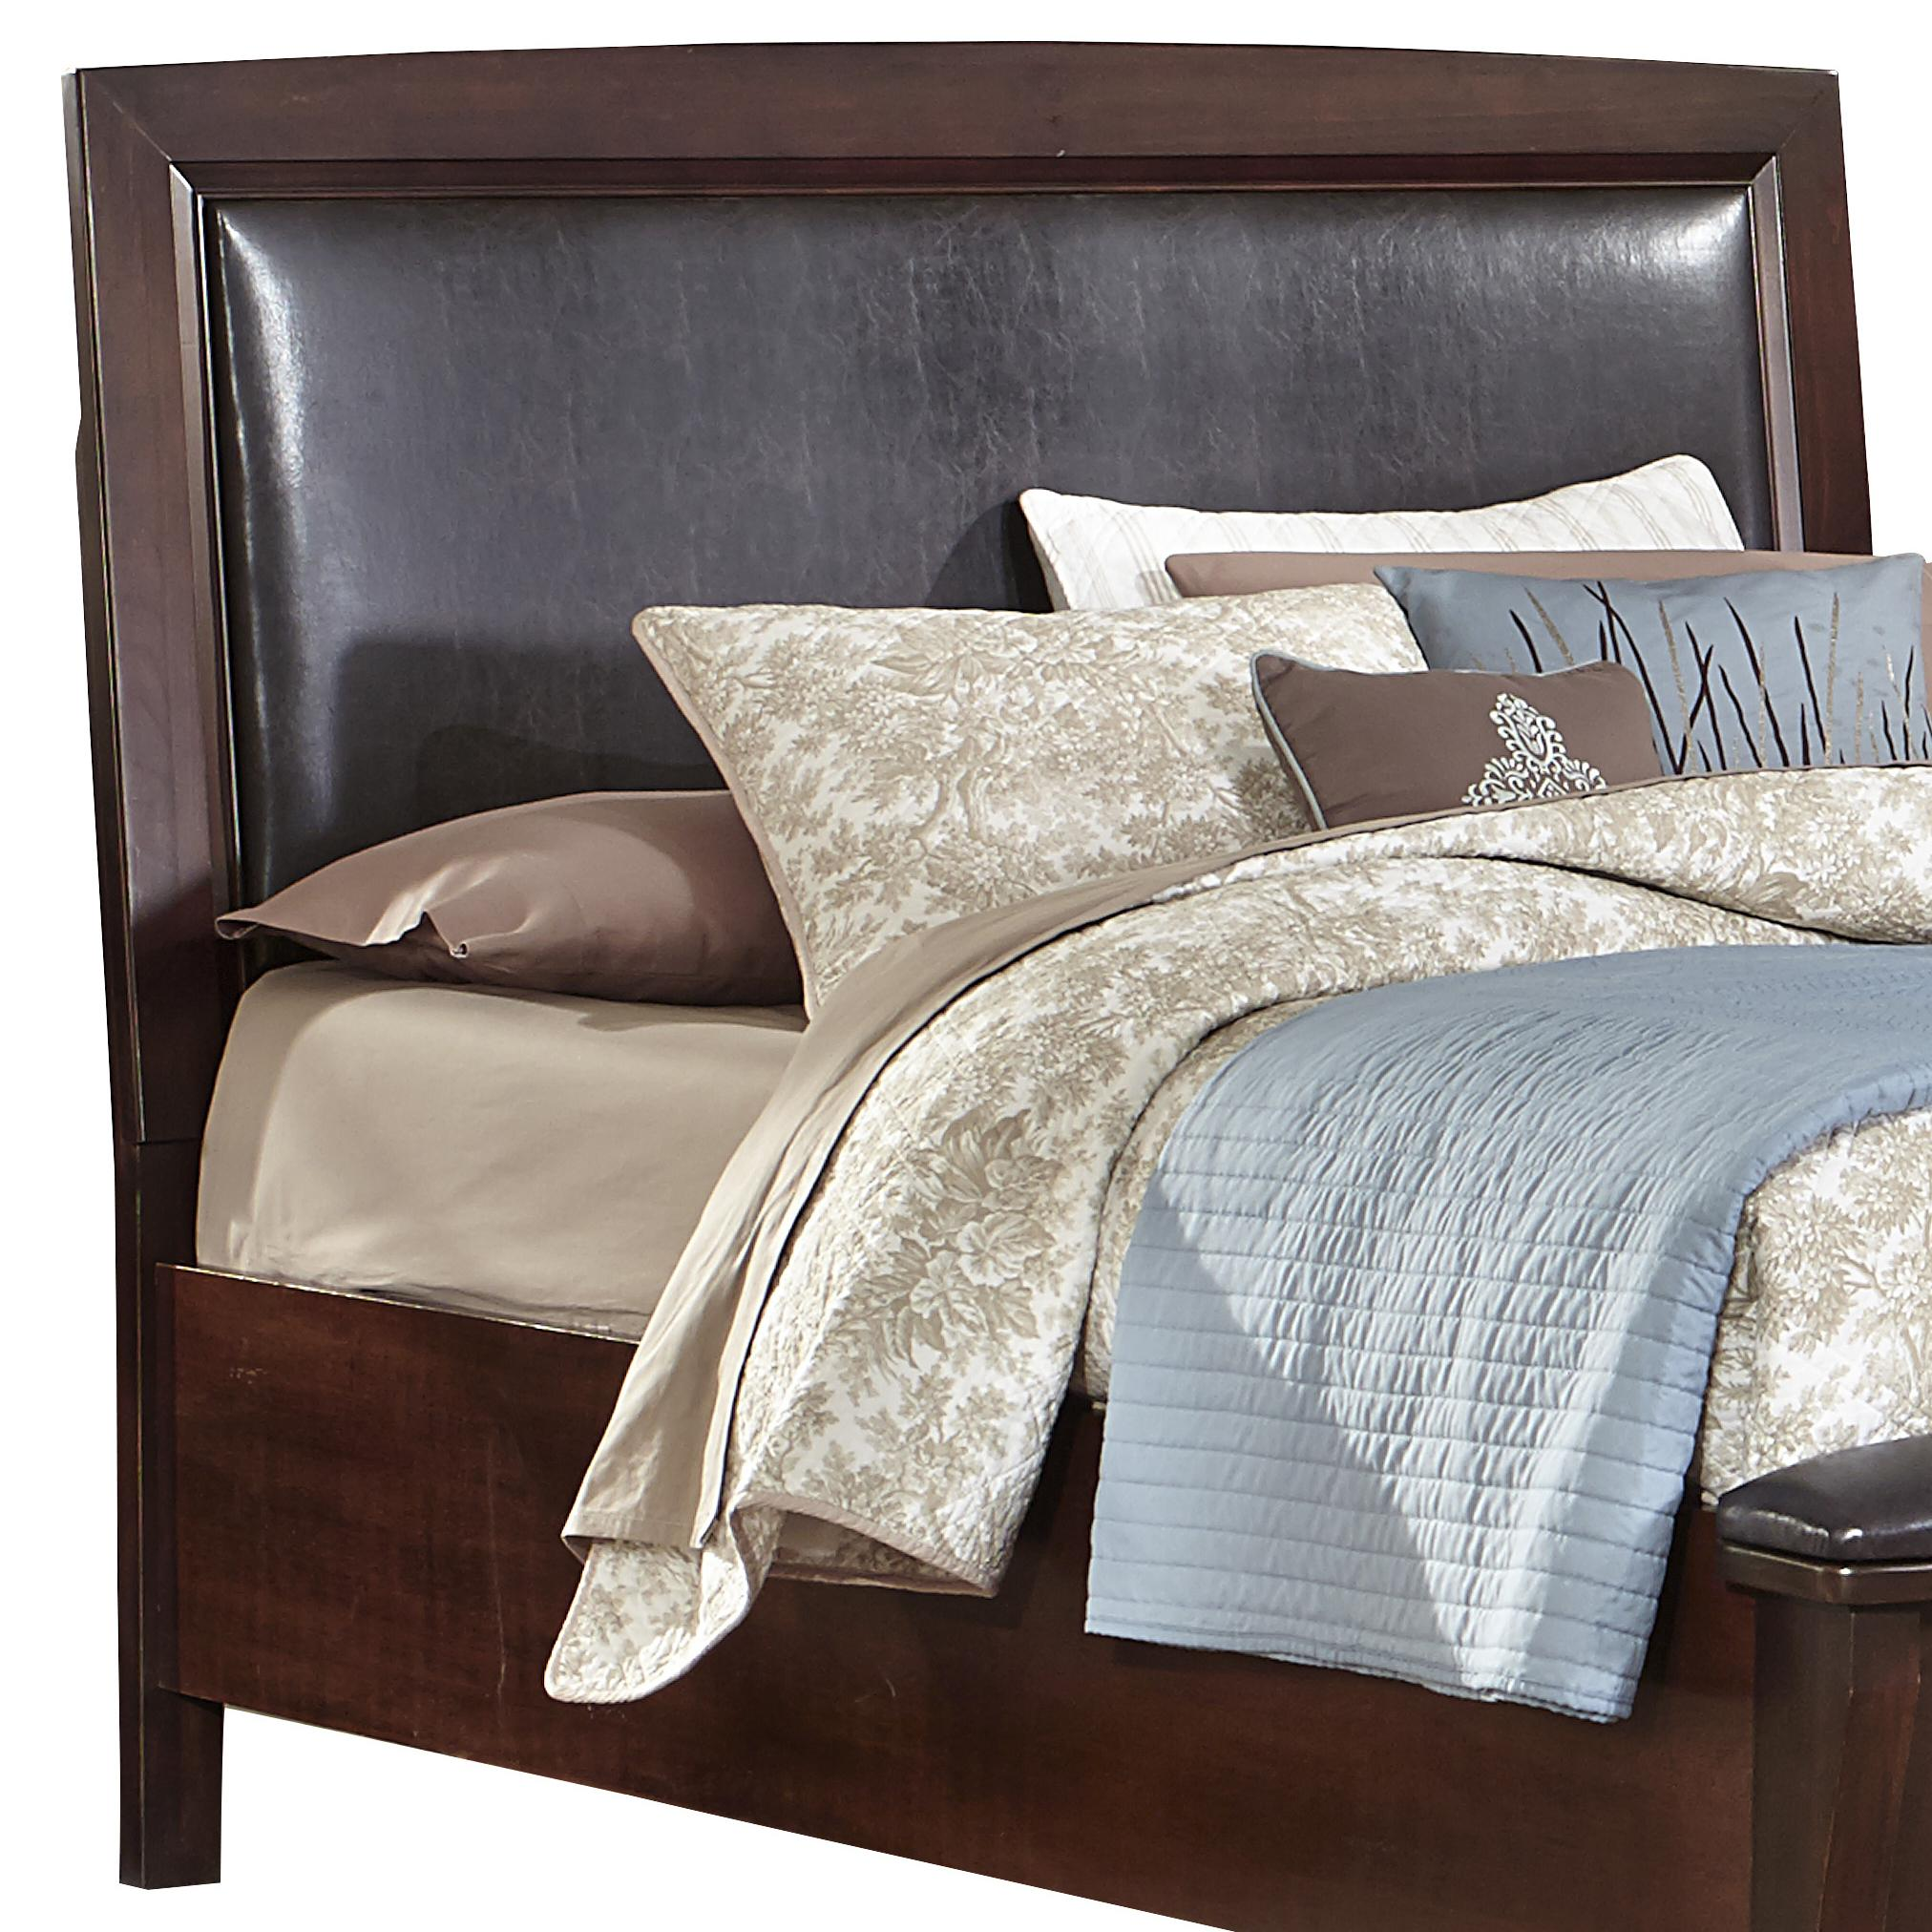 Vaughan Bassett Transitions King/Cal King Uph Headboard (Bonded Leather) - Item Number: BB68-669